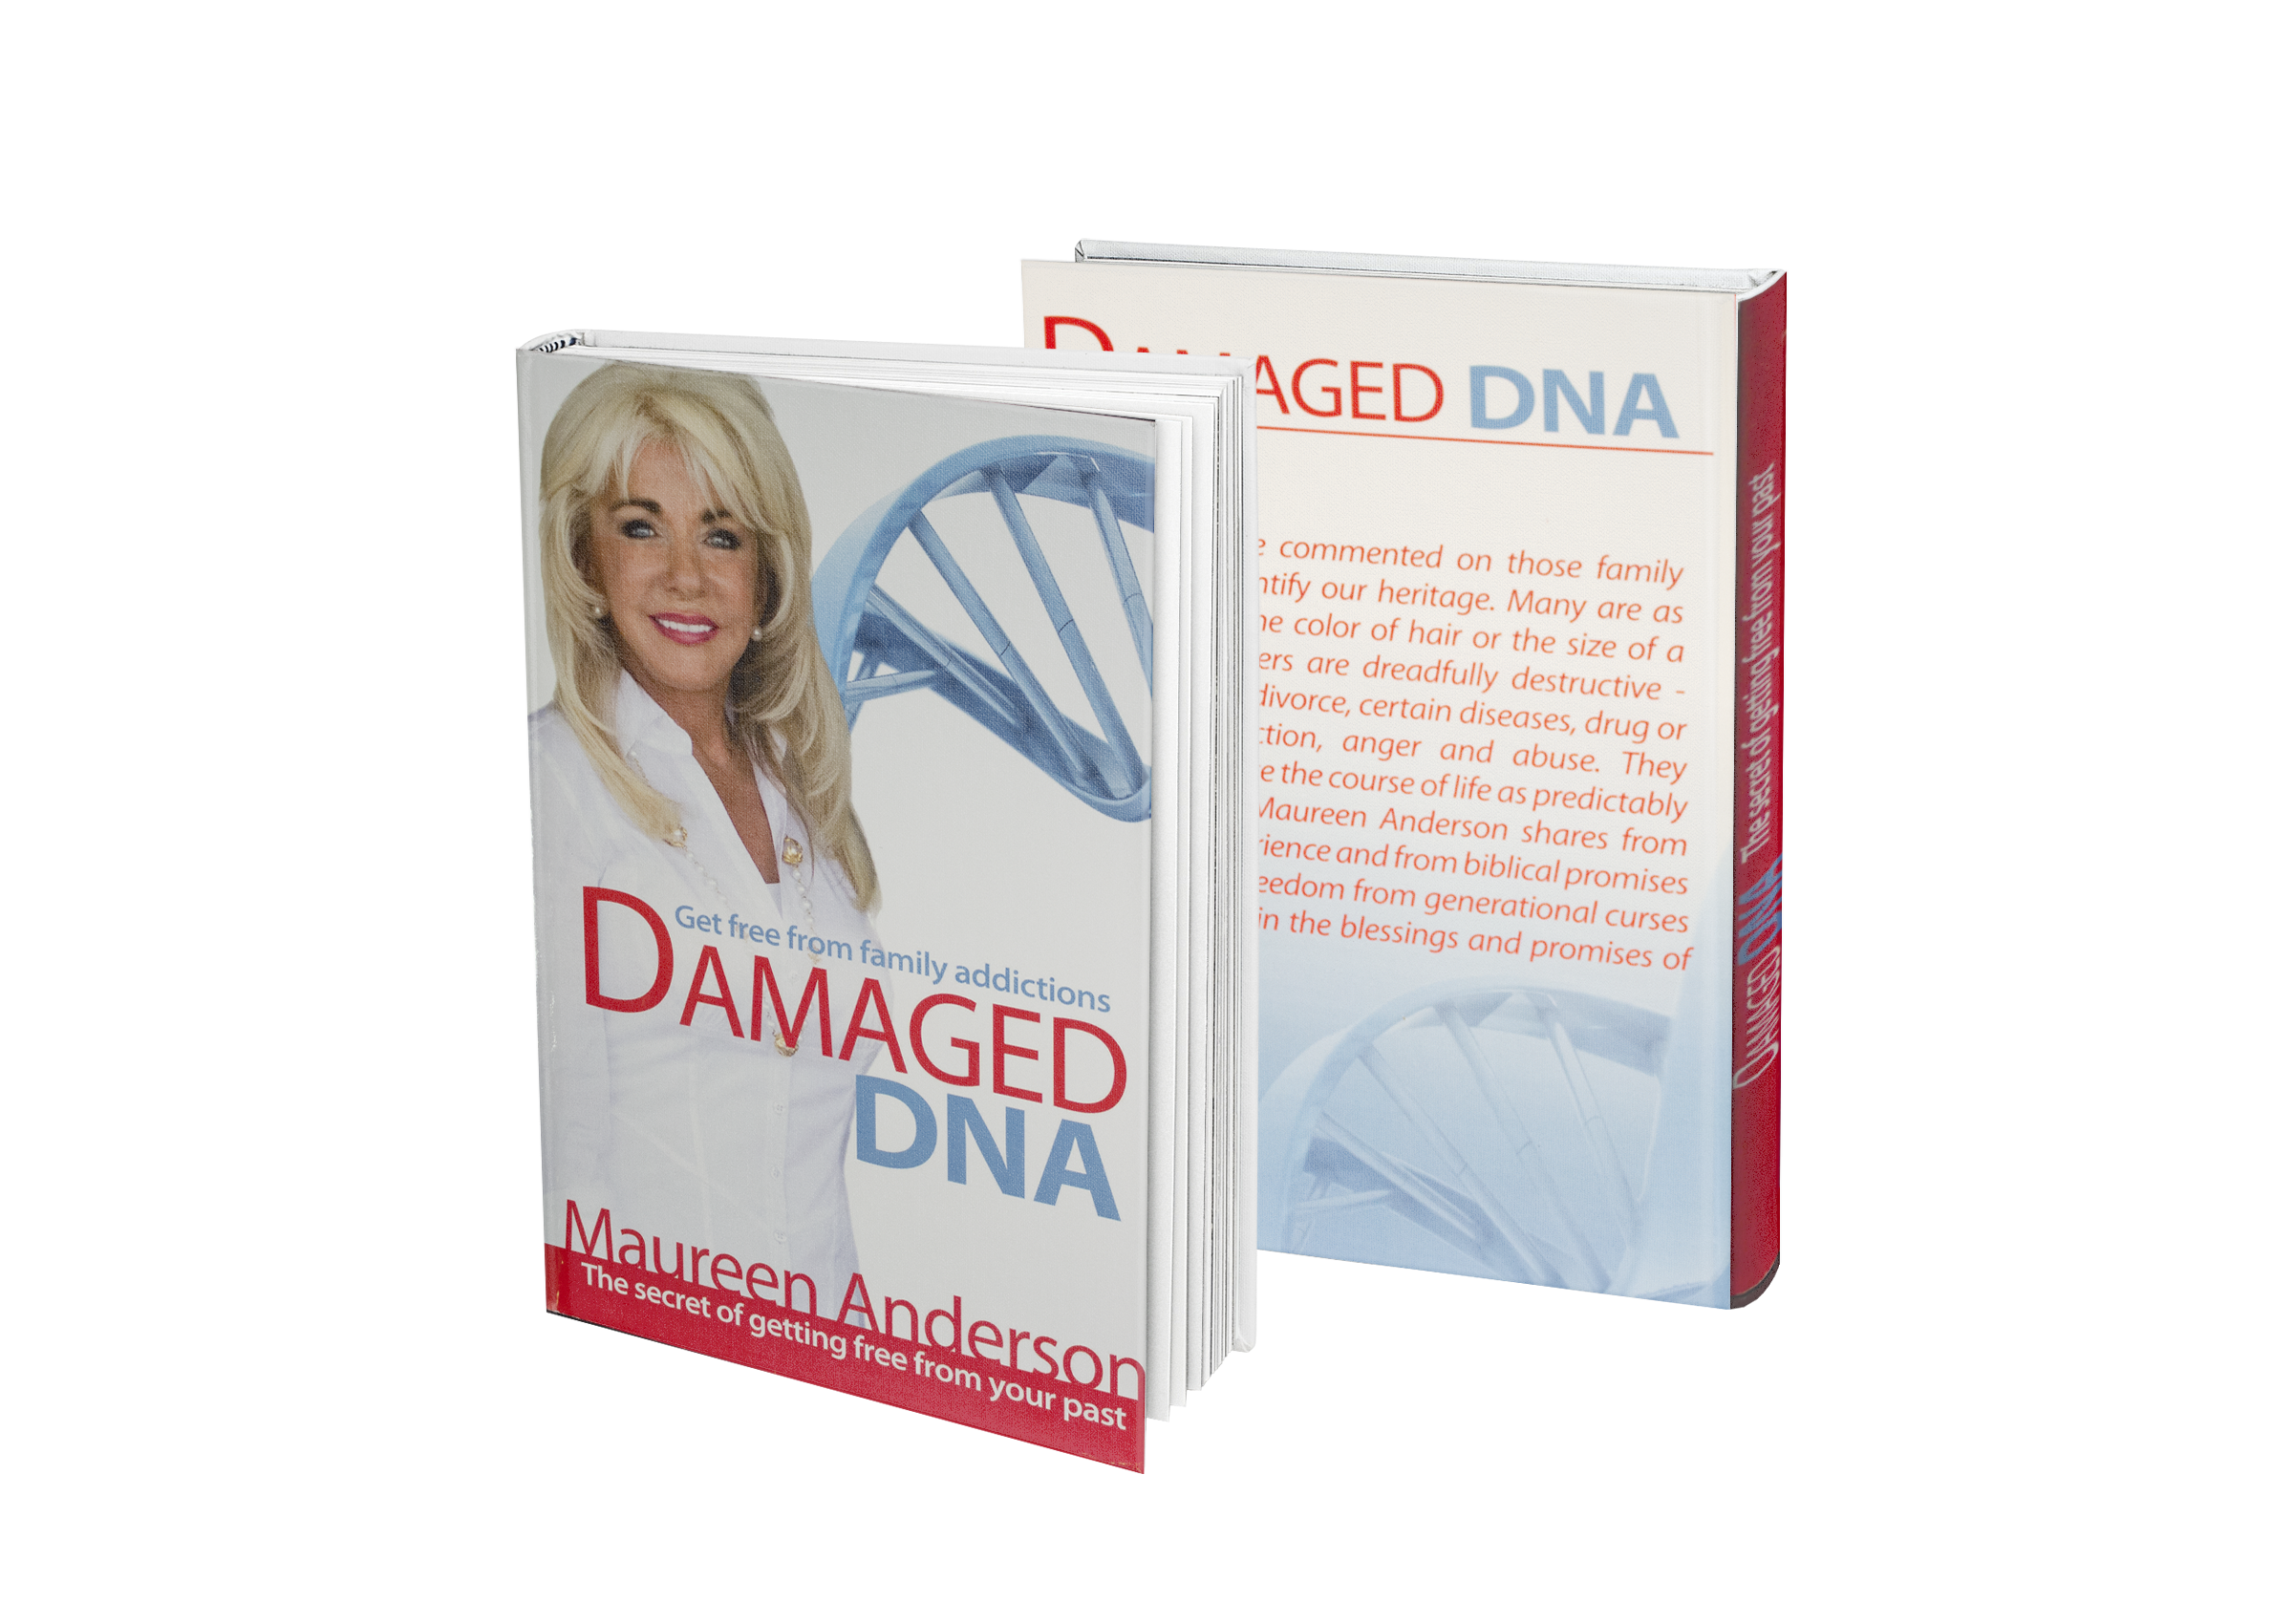 Damaged DNA